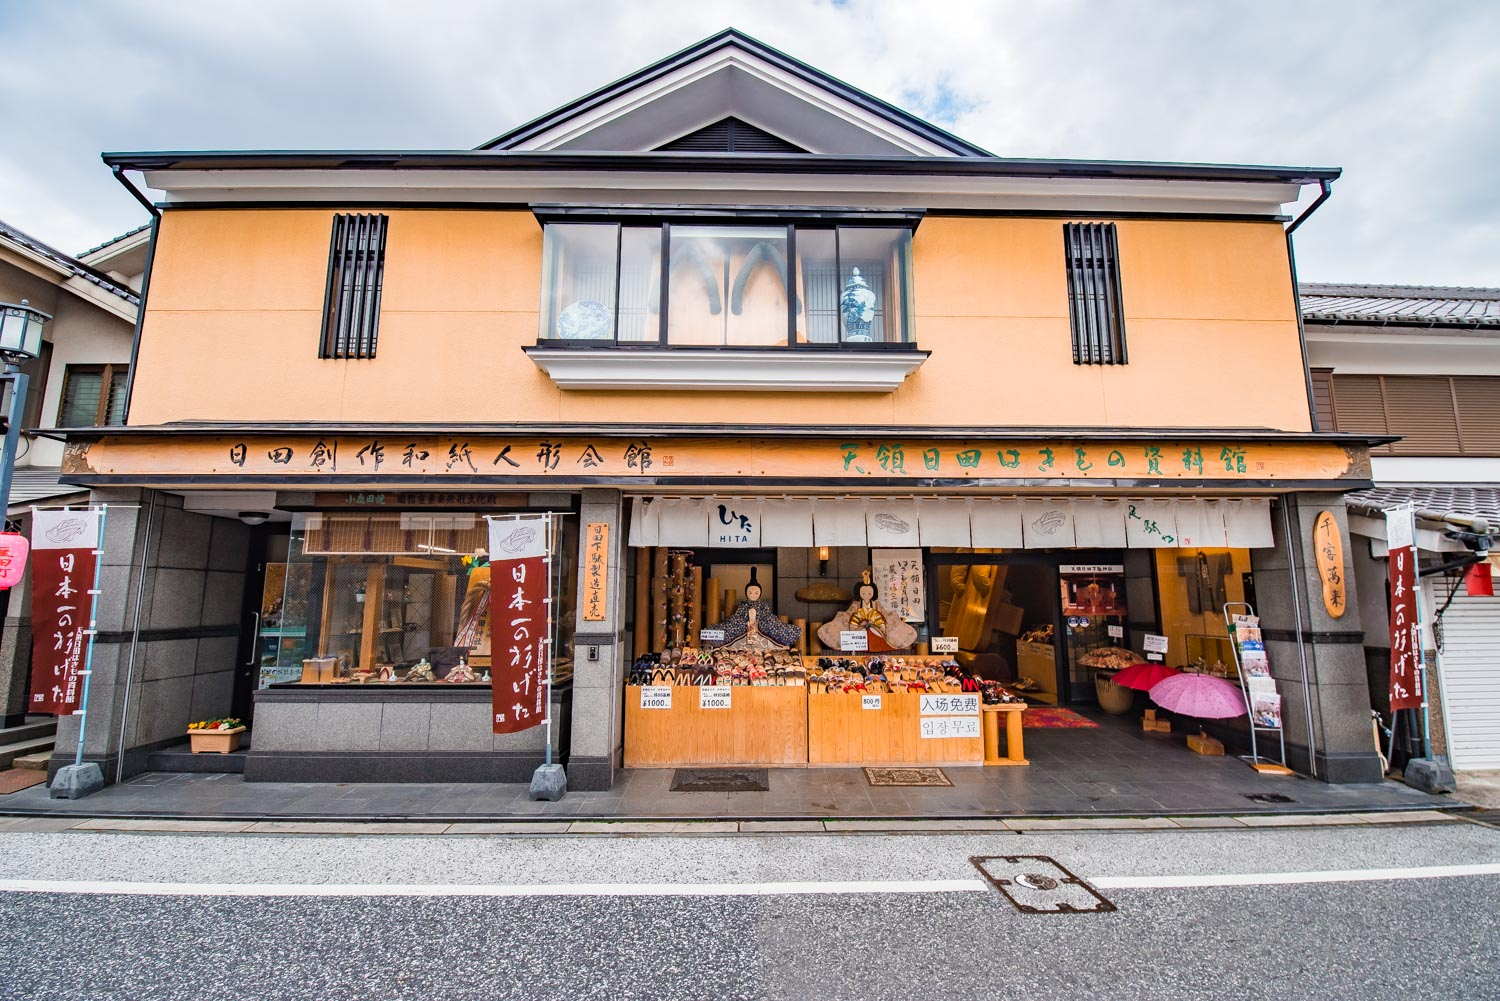 Mameda-Machi Shopping District, Hita, Oita, Japan